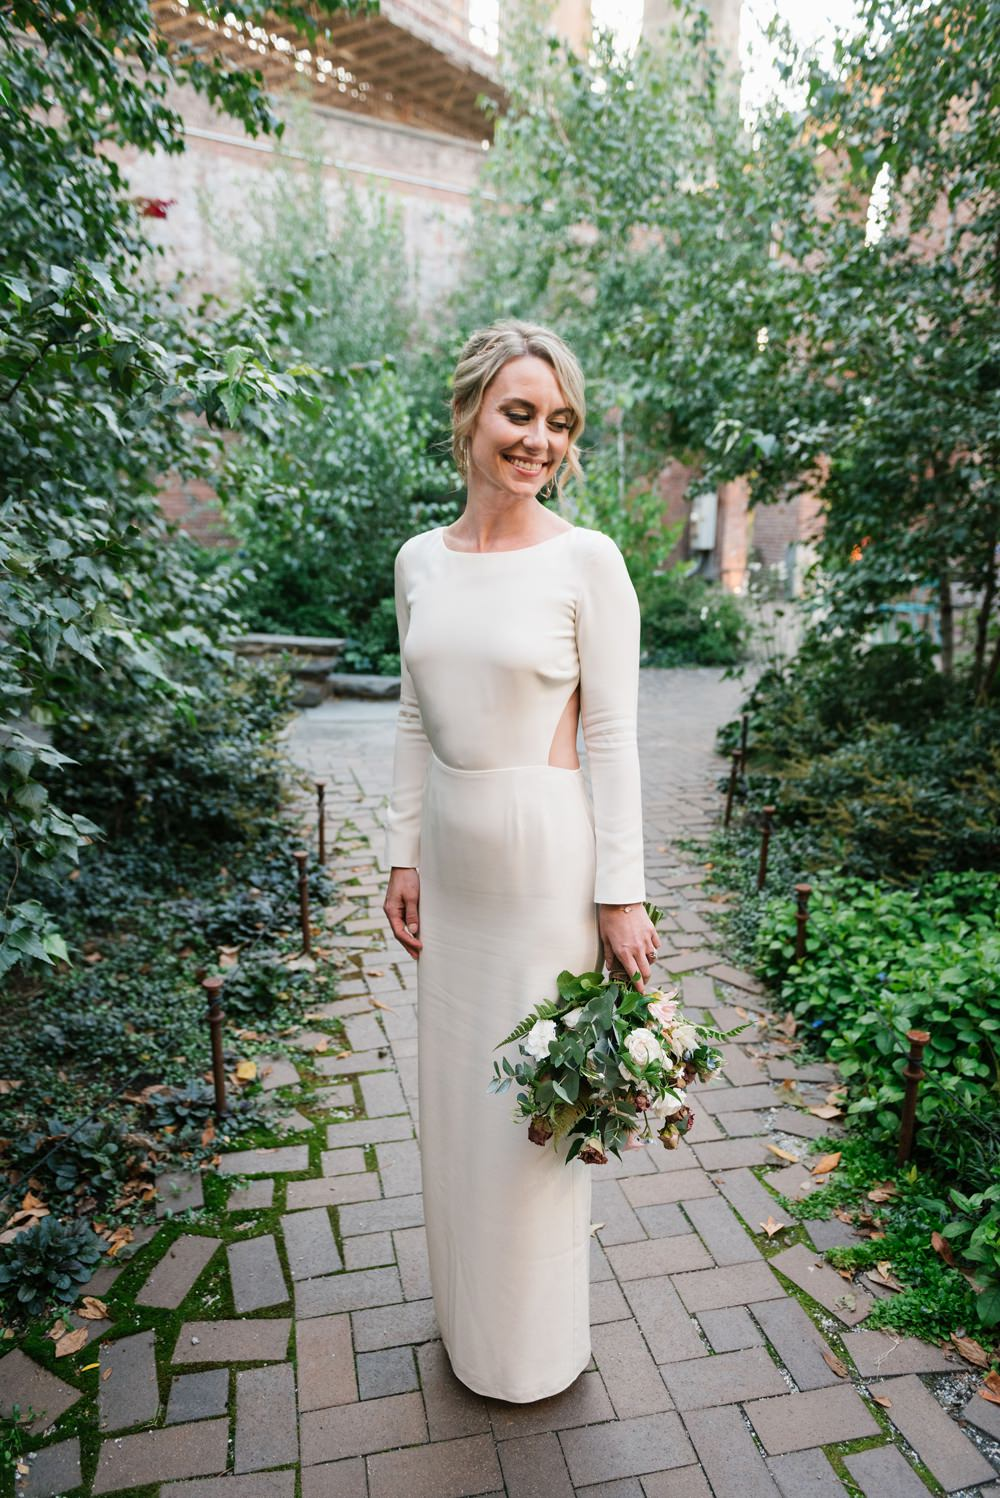 Dress Gown Bride Bridal Backless Long Sleeves Houghton NYC Brooklyn Elopement Everly Studios